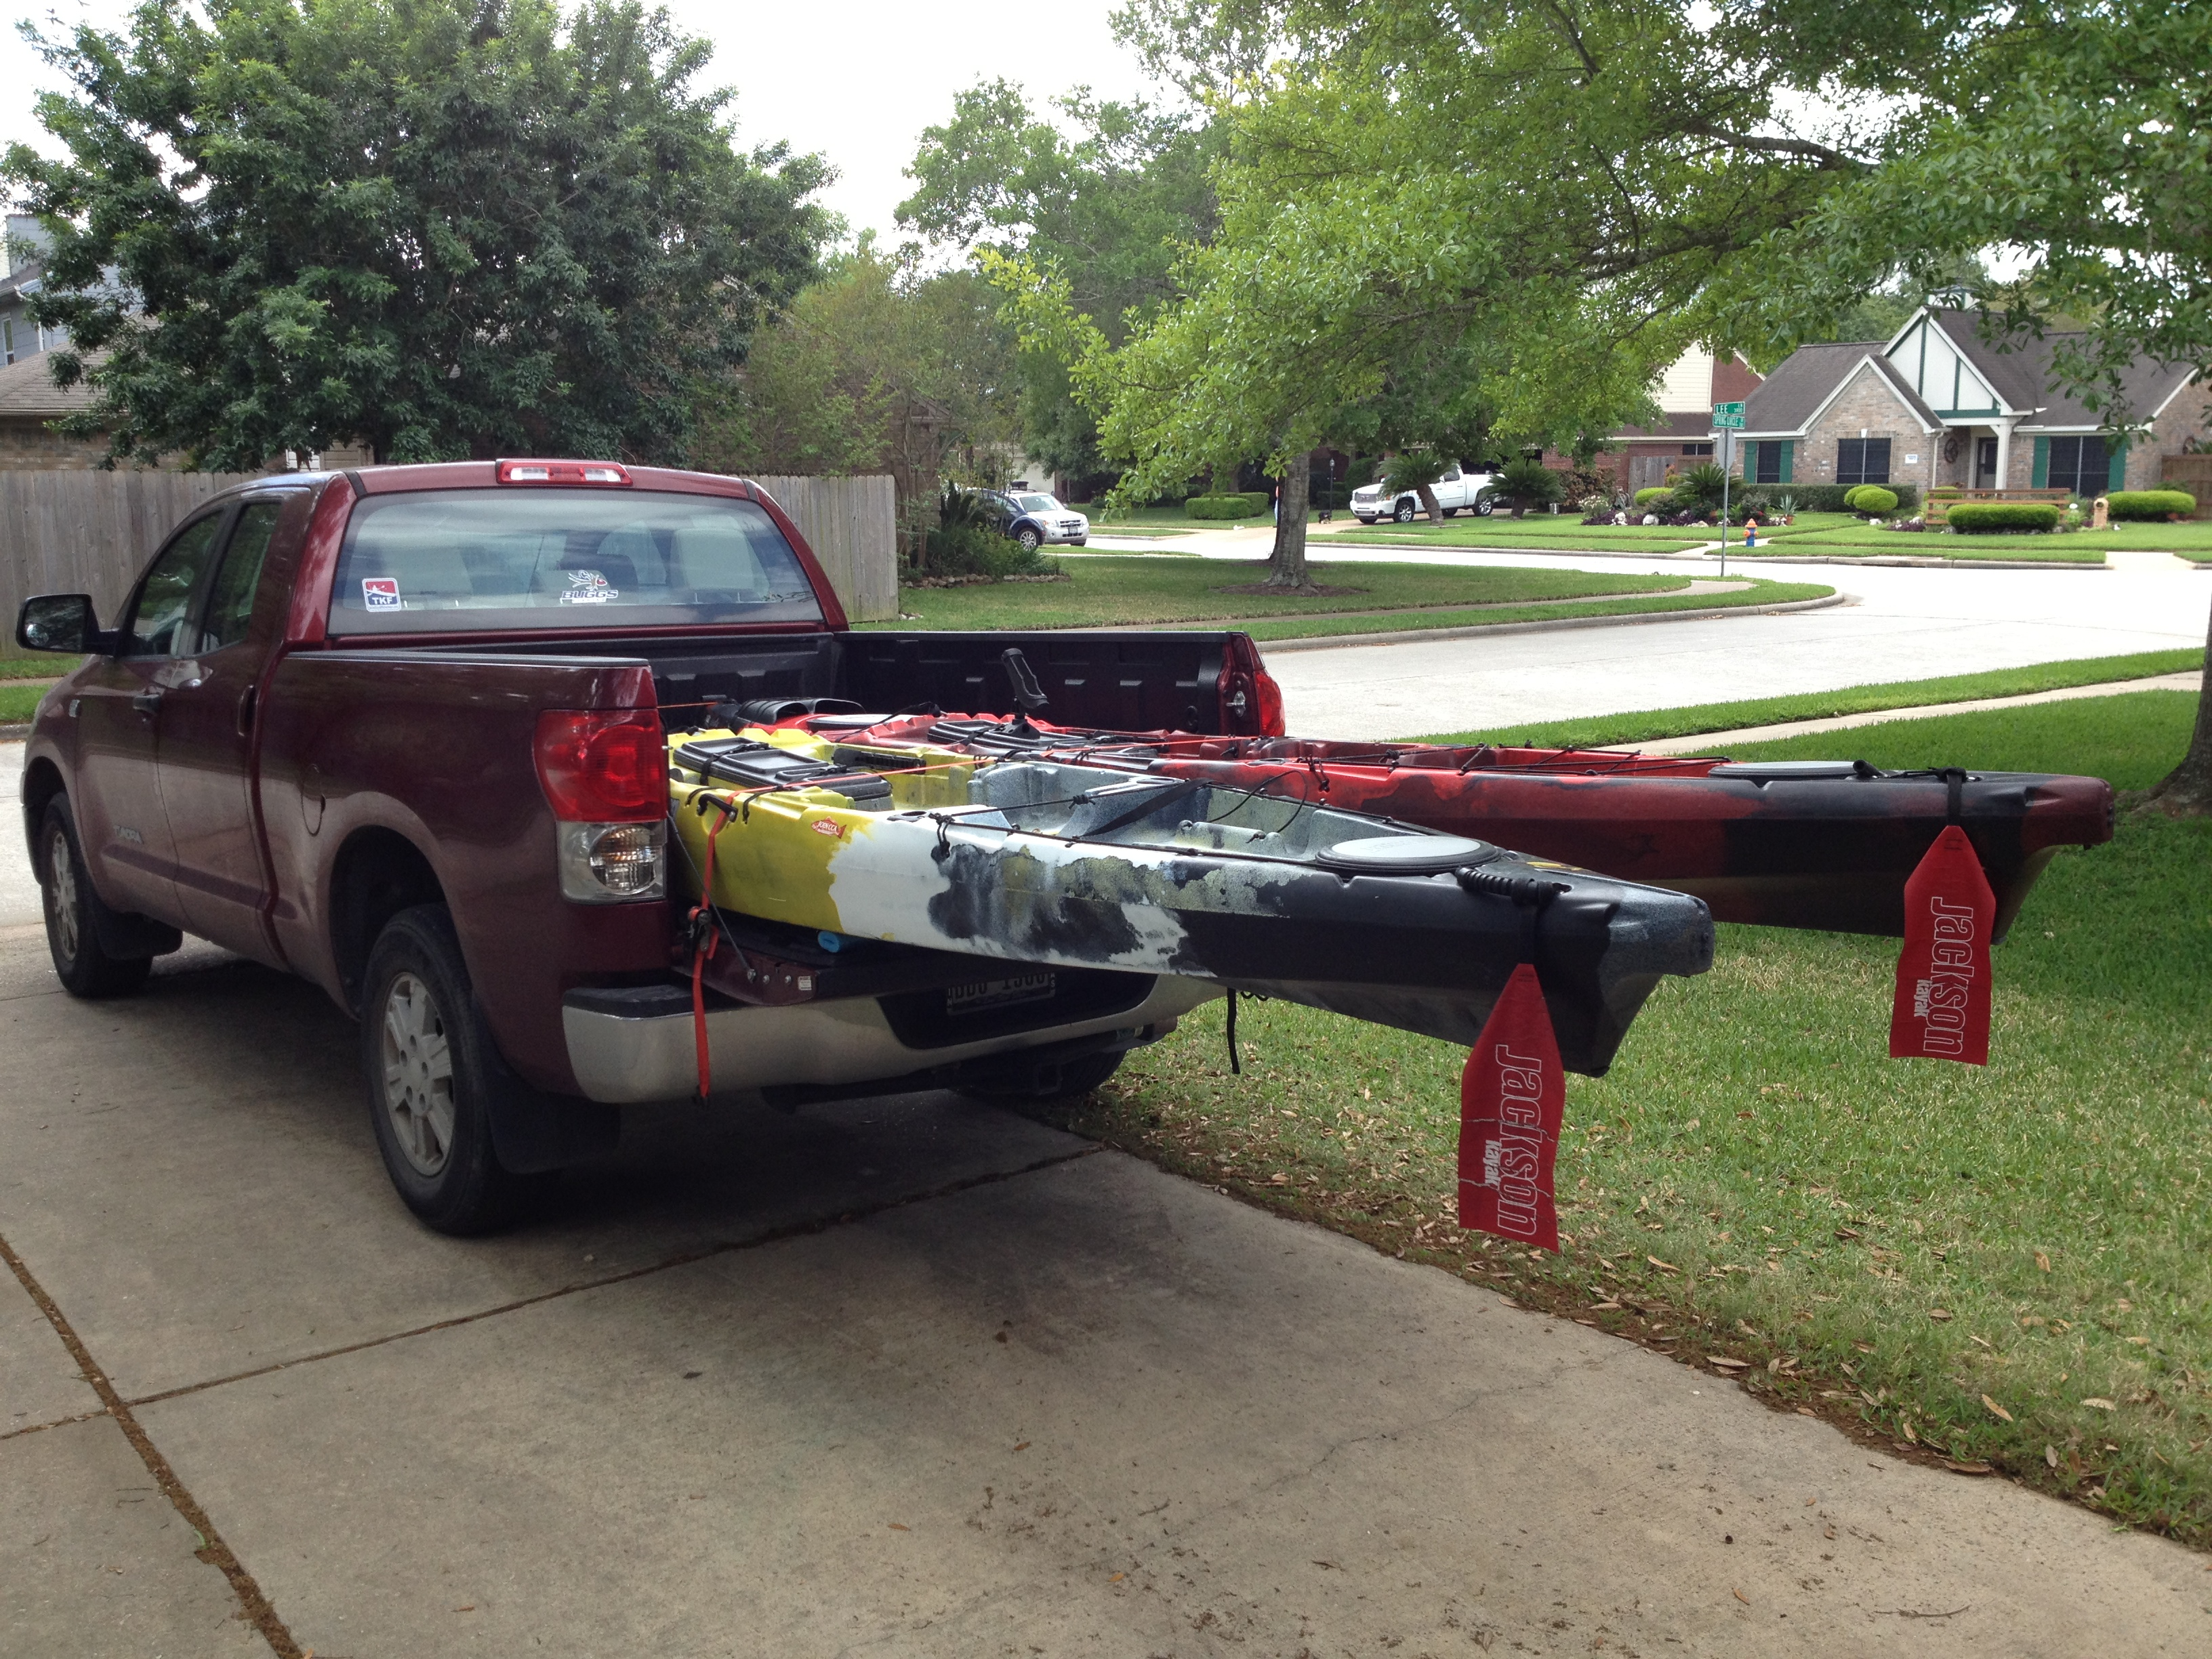 How To Fit Two Kayaks In A Truck Bed